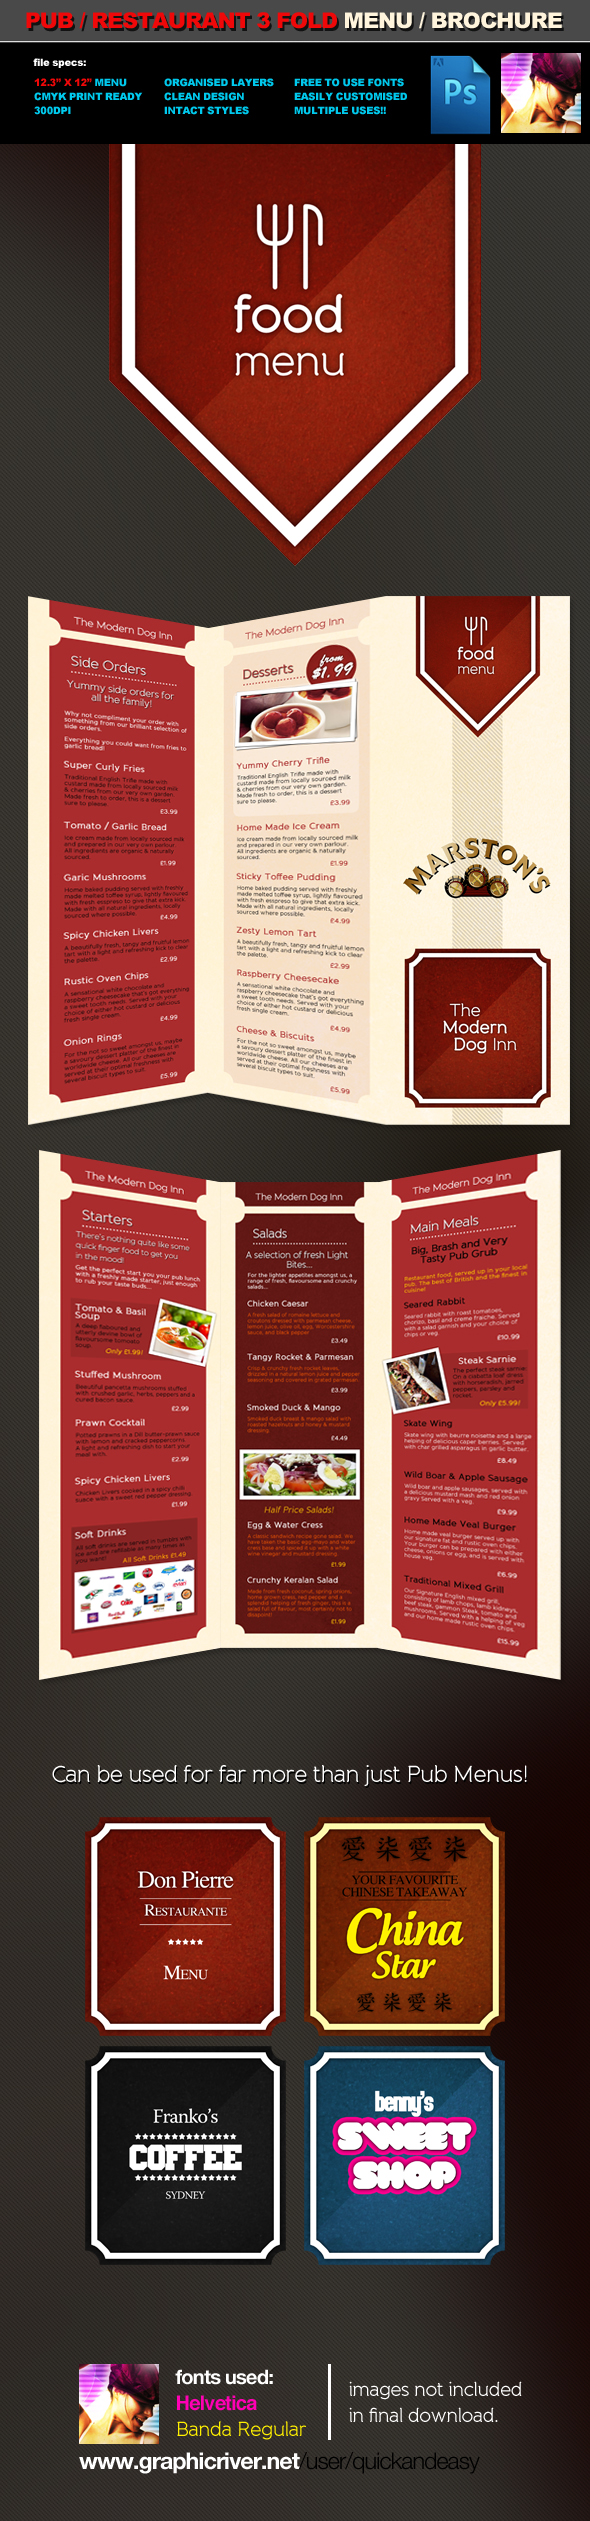 3 Fold Pub Food Menu Brochure by quickandeasy1